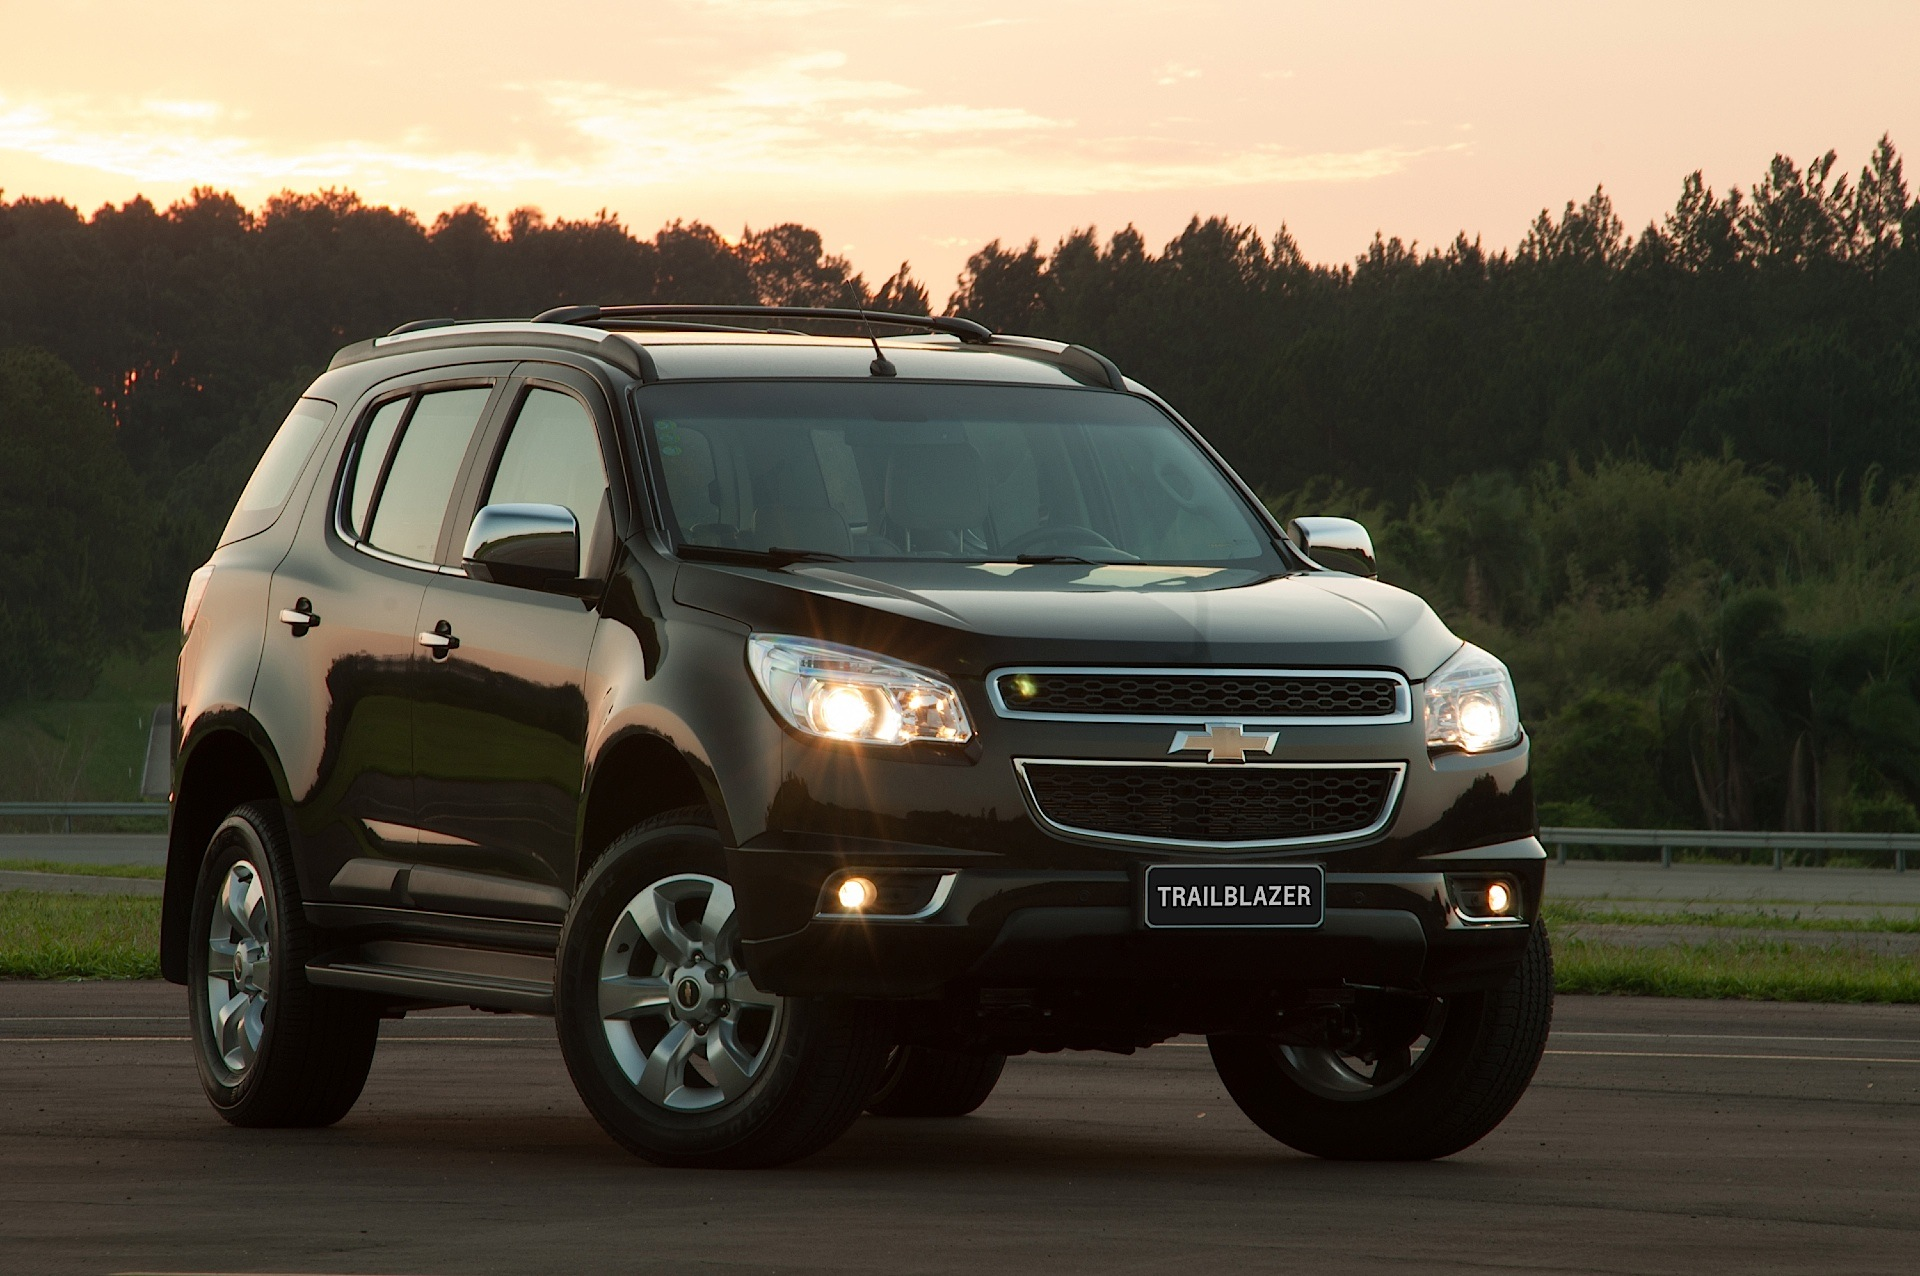 CHEVROLET TrailBlazer specs - 2012, 2013, 2014, 2015, 2016, 2017 - autoevolution